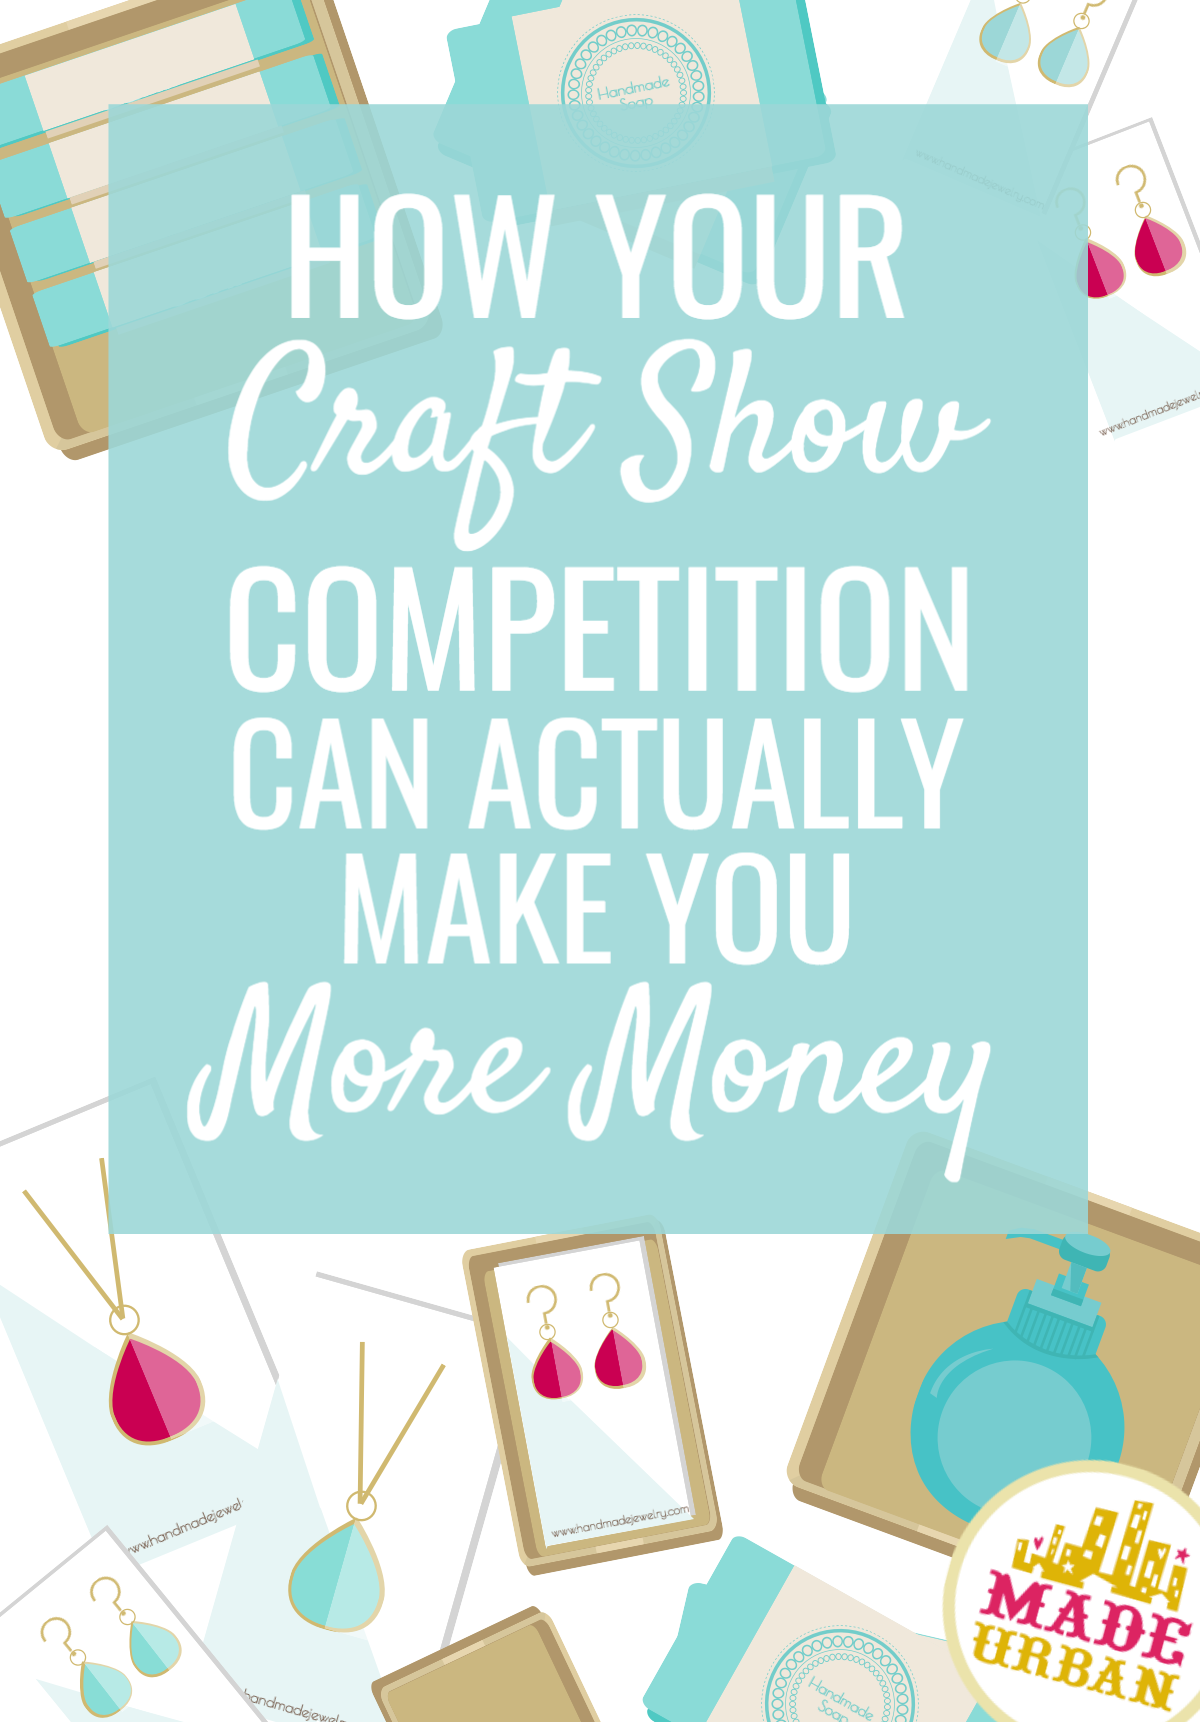 You may look at other craft fair vendors as your competition. But there's actually a way you can work with them to boost your sales and make more money.